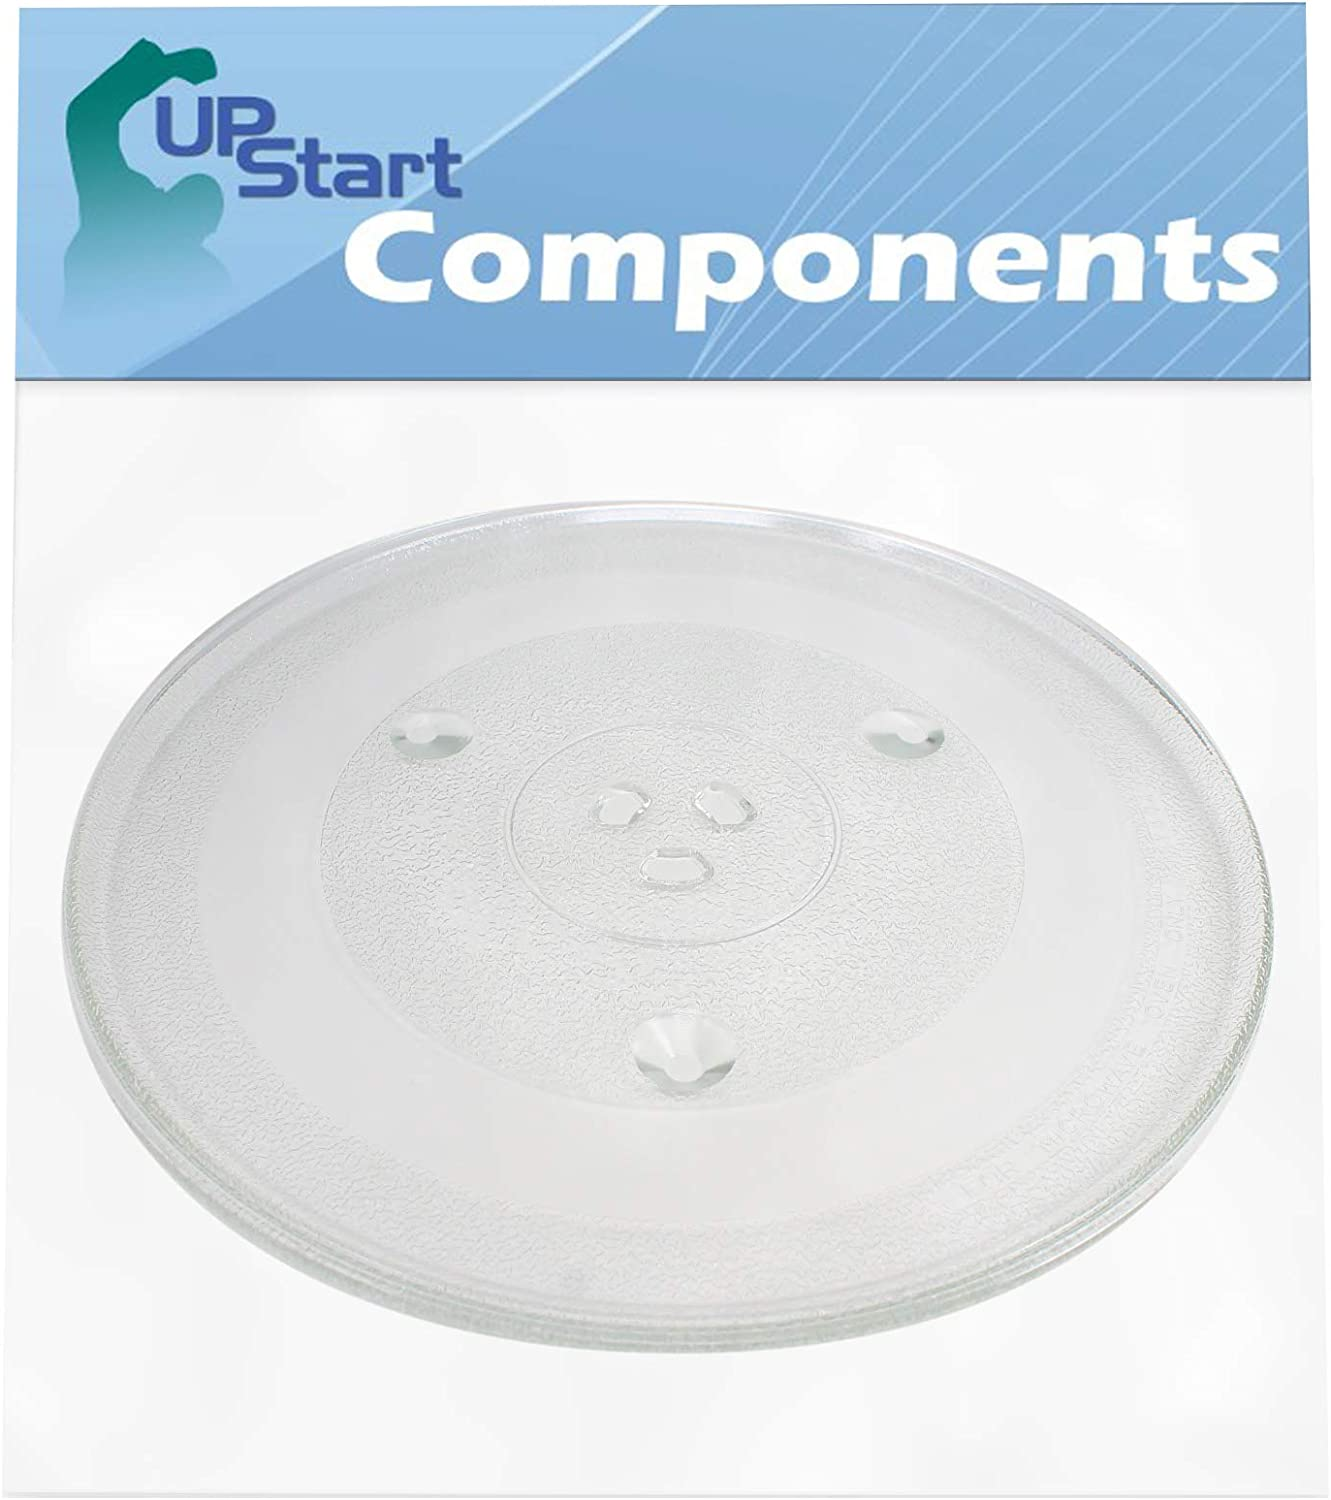 P34 Microwave Glass Turntable Plate Replacement for Hamilton Beach P100N30ALS3B - Compatible with P34 12 3/8 Inch Glass Tray